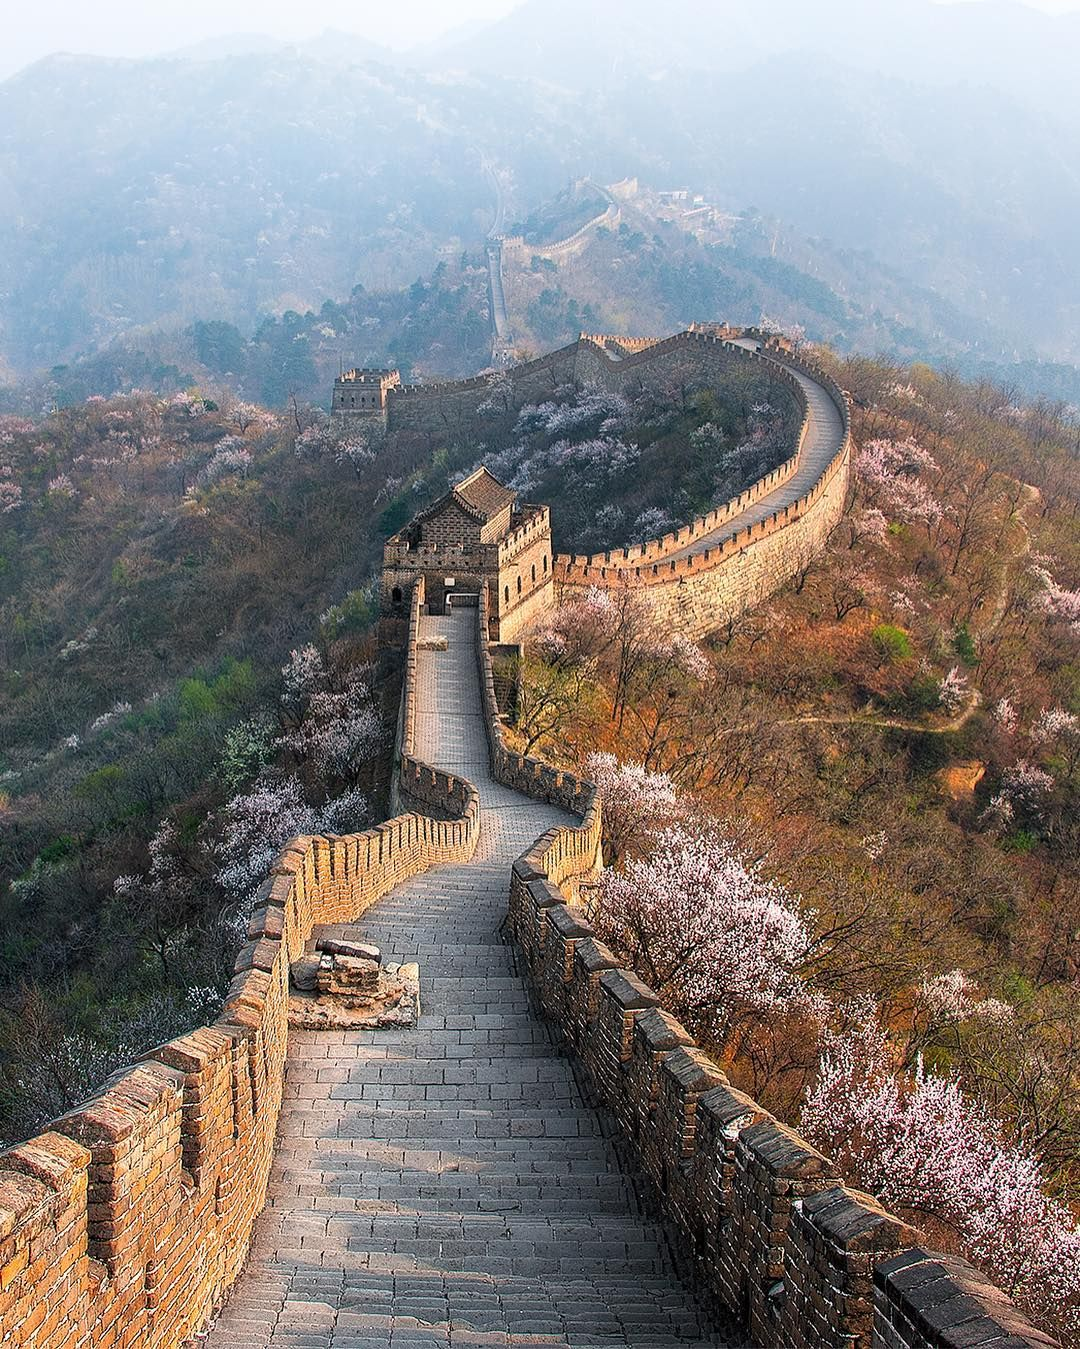 Elia Locardi On Instagram The Great Wall Of China As Beautiful Cherry Blossoms Bloom In A Hazy S Great Wall Of China Beautiful Destinations Purpose Of Travel